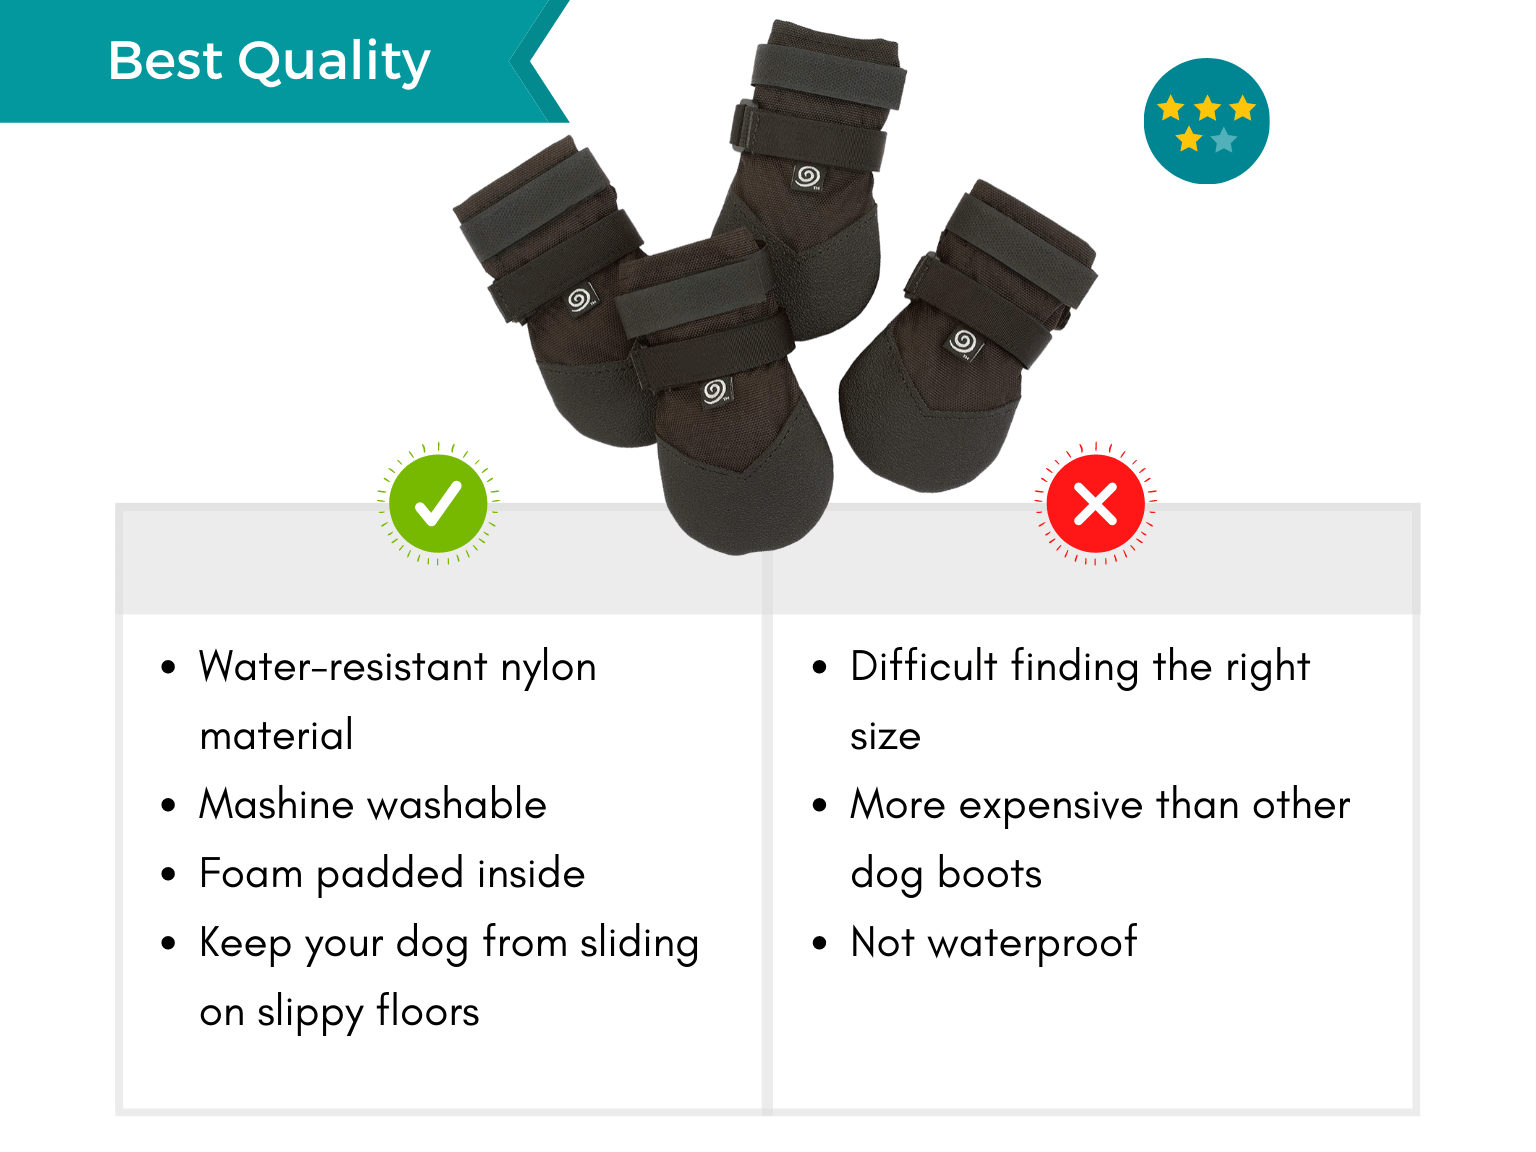 Infographic displaying pros and cons of the waterproof dog boots with the highest quality.